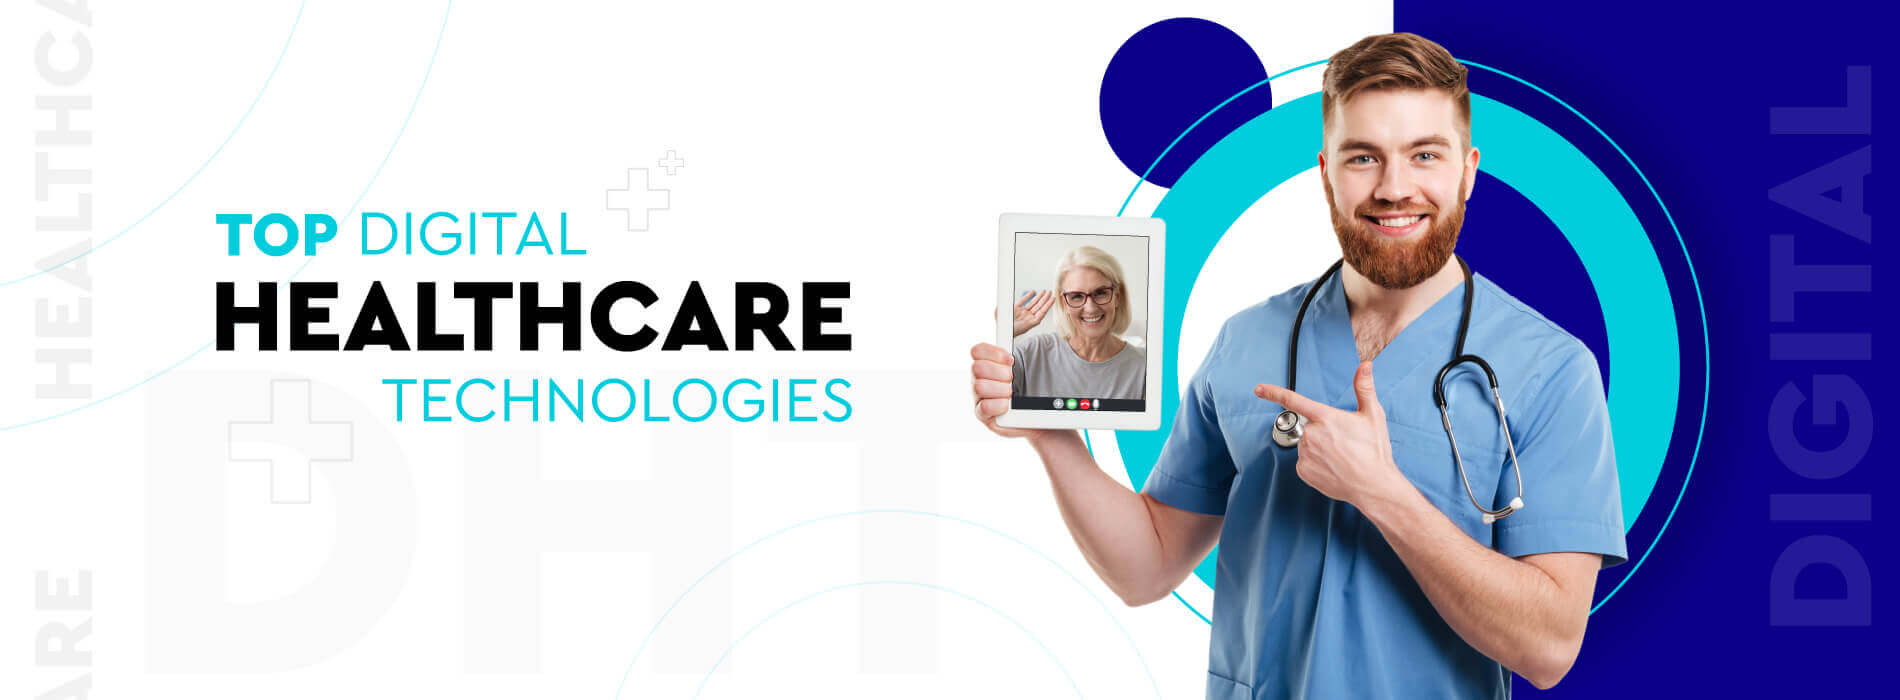 Top Digital Healthcare Solutions to Enhance Patient Care and Improve Workflows